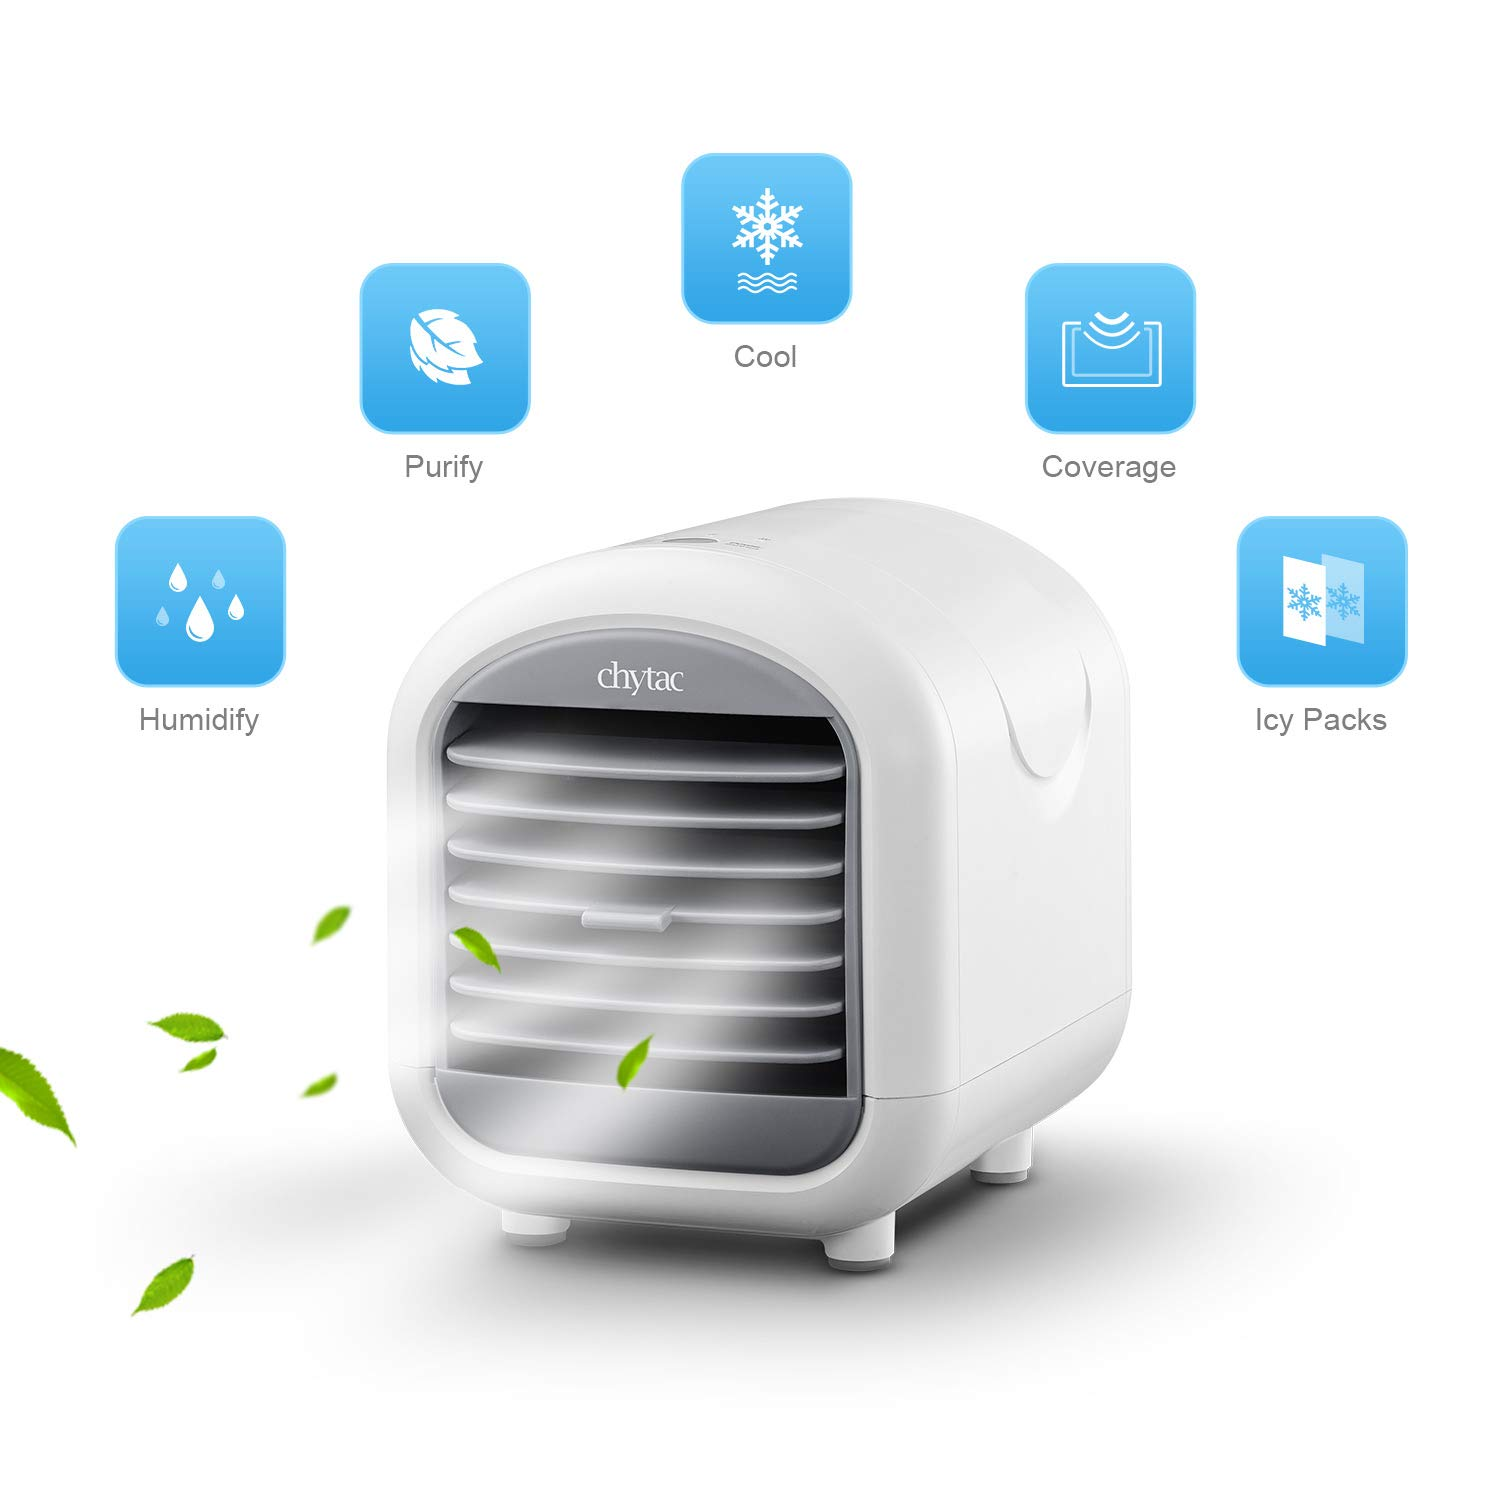 Chytac Mini Air Conditioner Personal Air Cooler Portable Arctic with 3 Speed 15 Million Negative ions dust Removal and Sterilization for Room Home (White) by Chytac